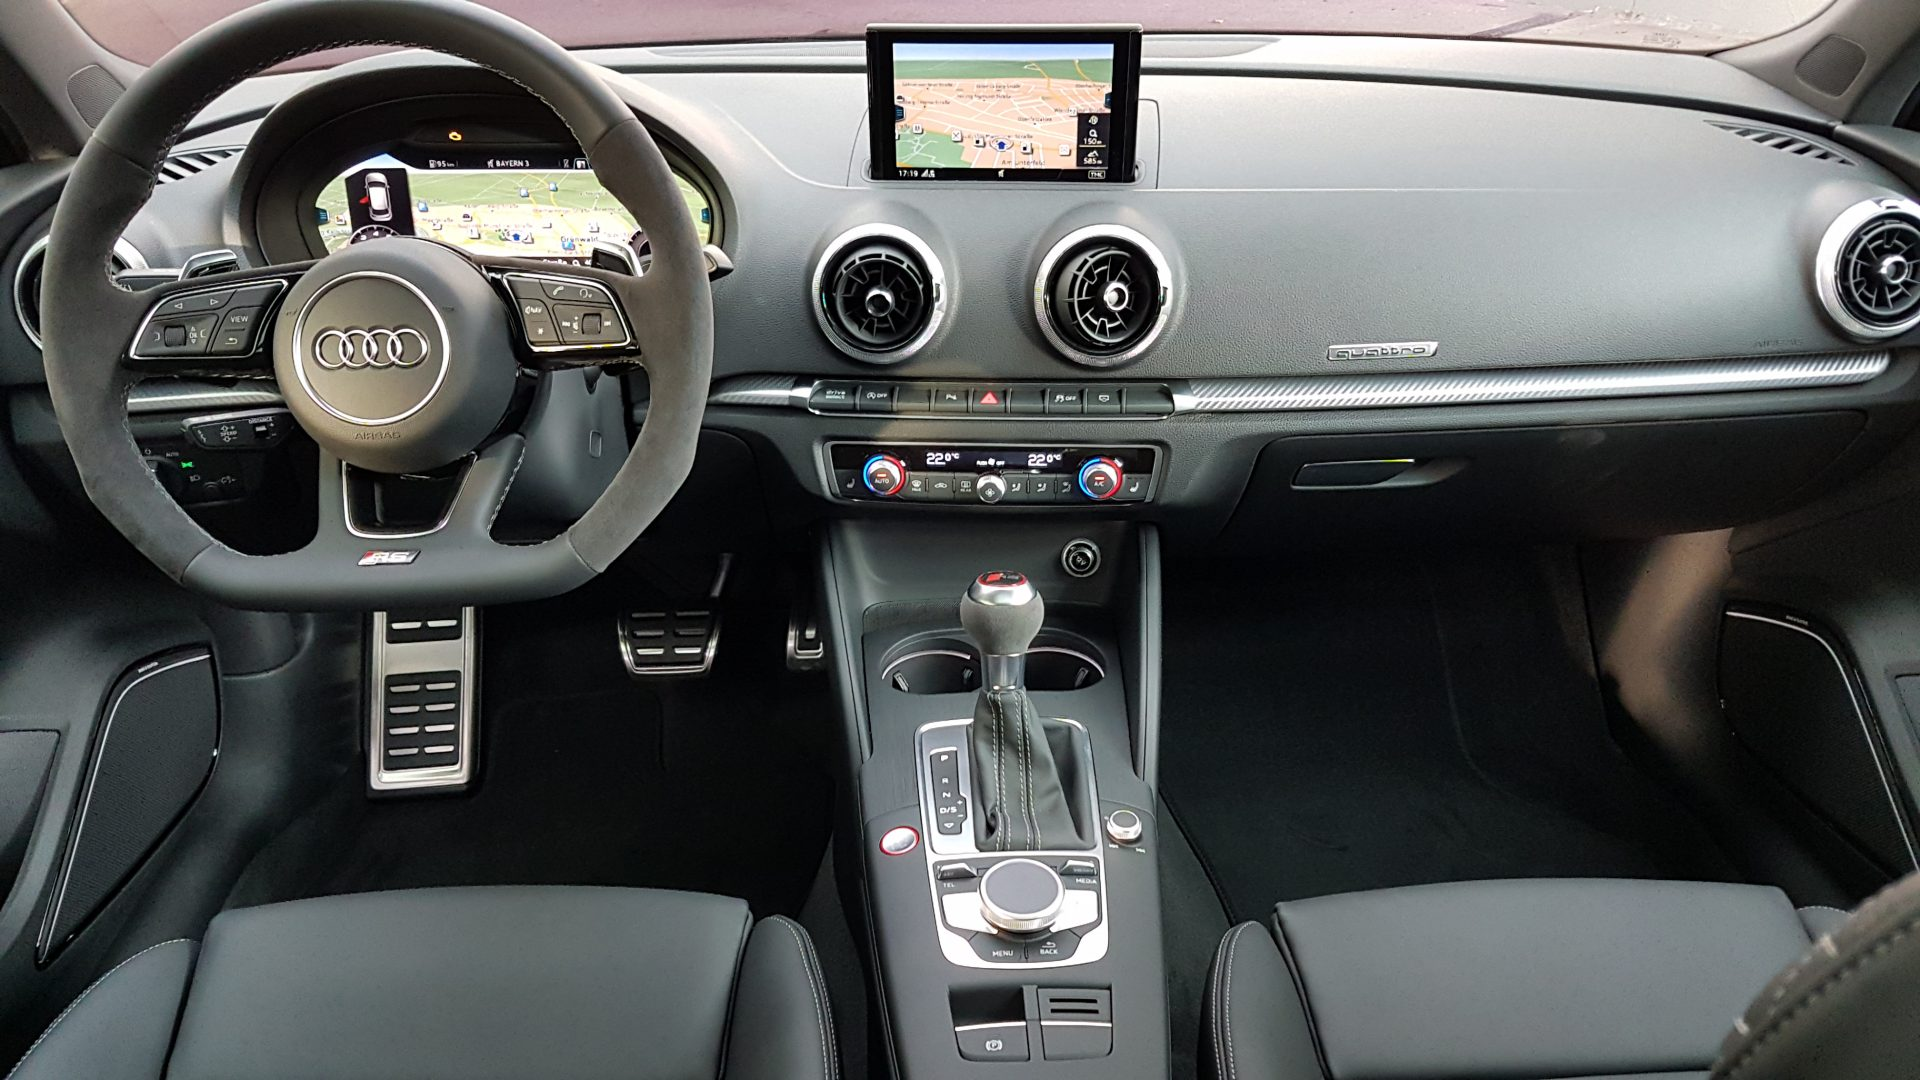 AIL Audi RS3 Sportback Matrix Panorama Virtual Cockpit 5